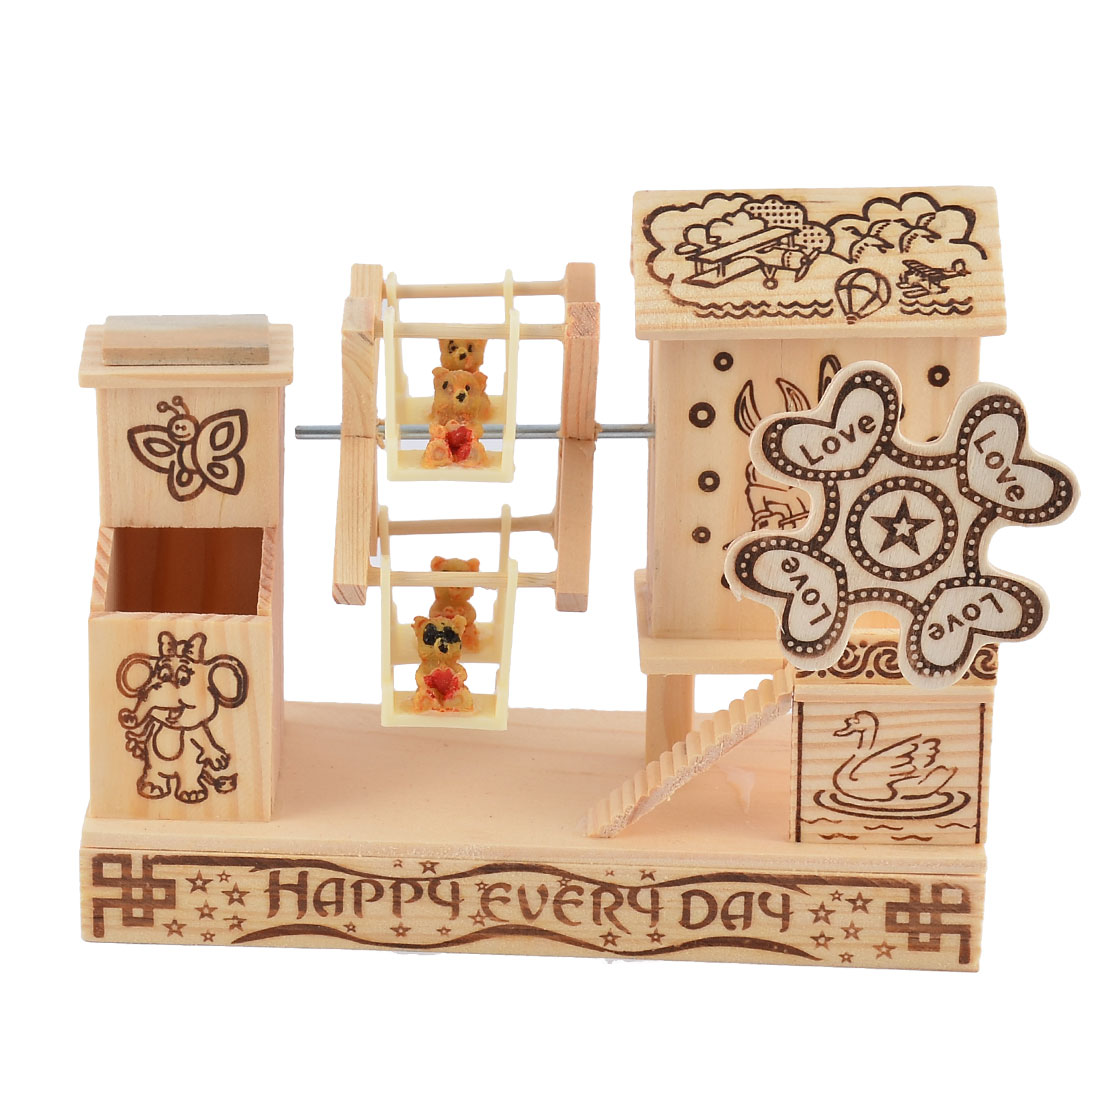 Home Wooden House Shaped Bears Decor Hand Power Music Box Desktop Decor Birthday Gift